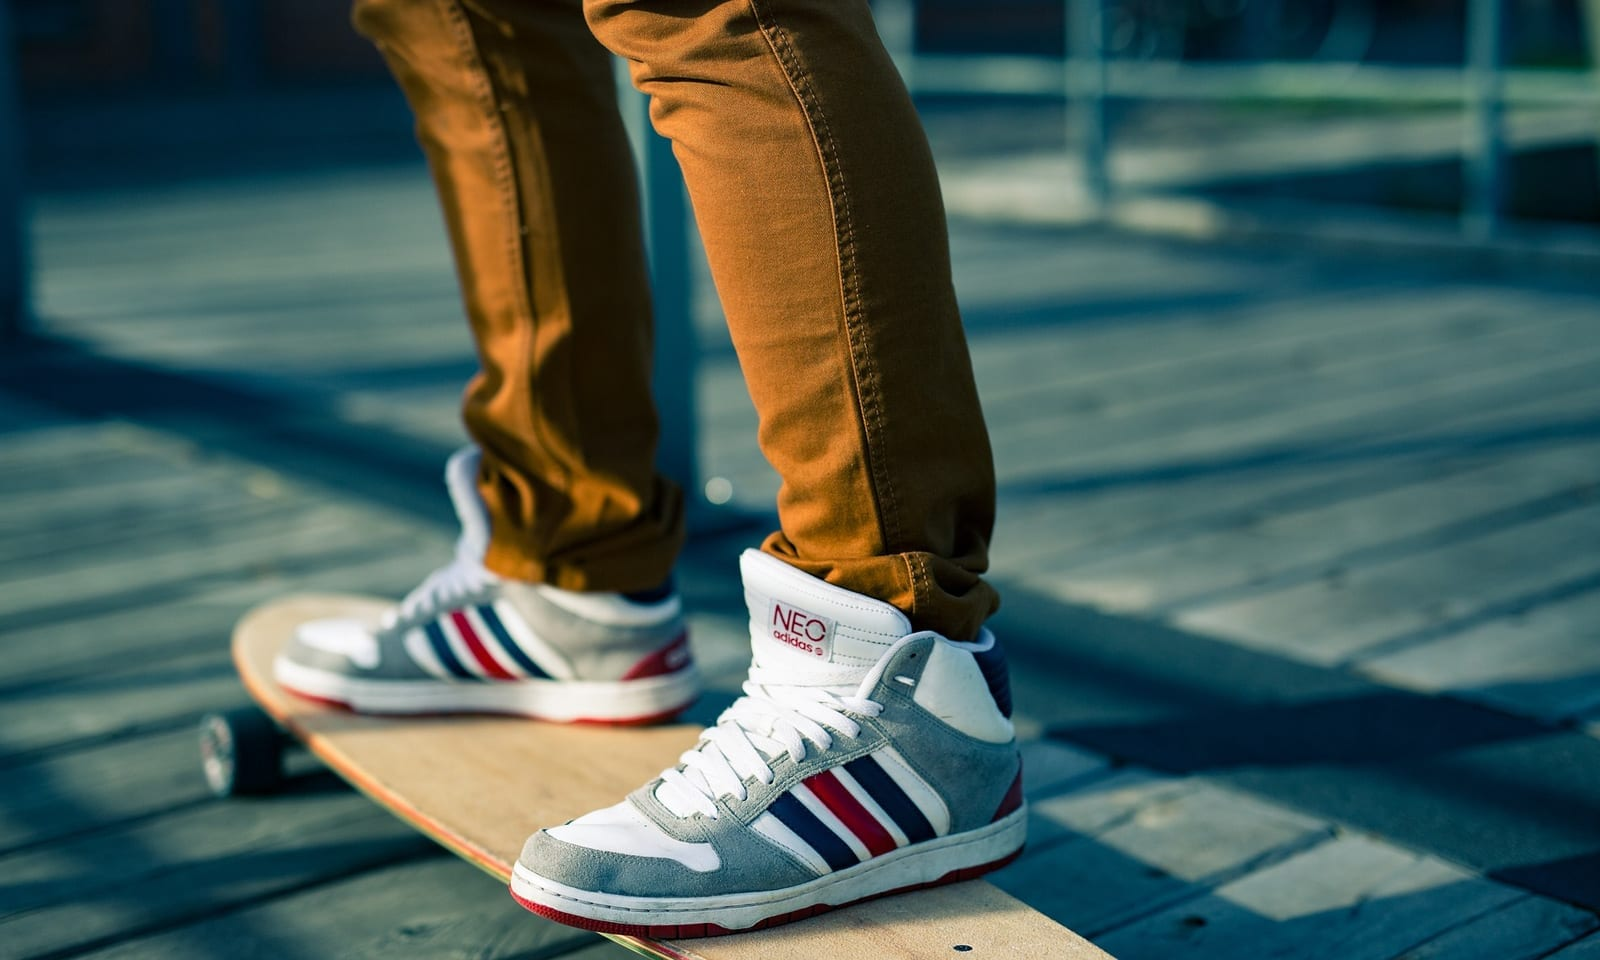 skate-shoes-image-4